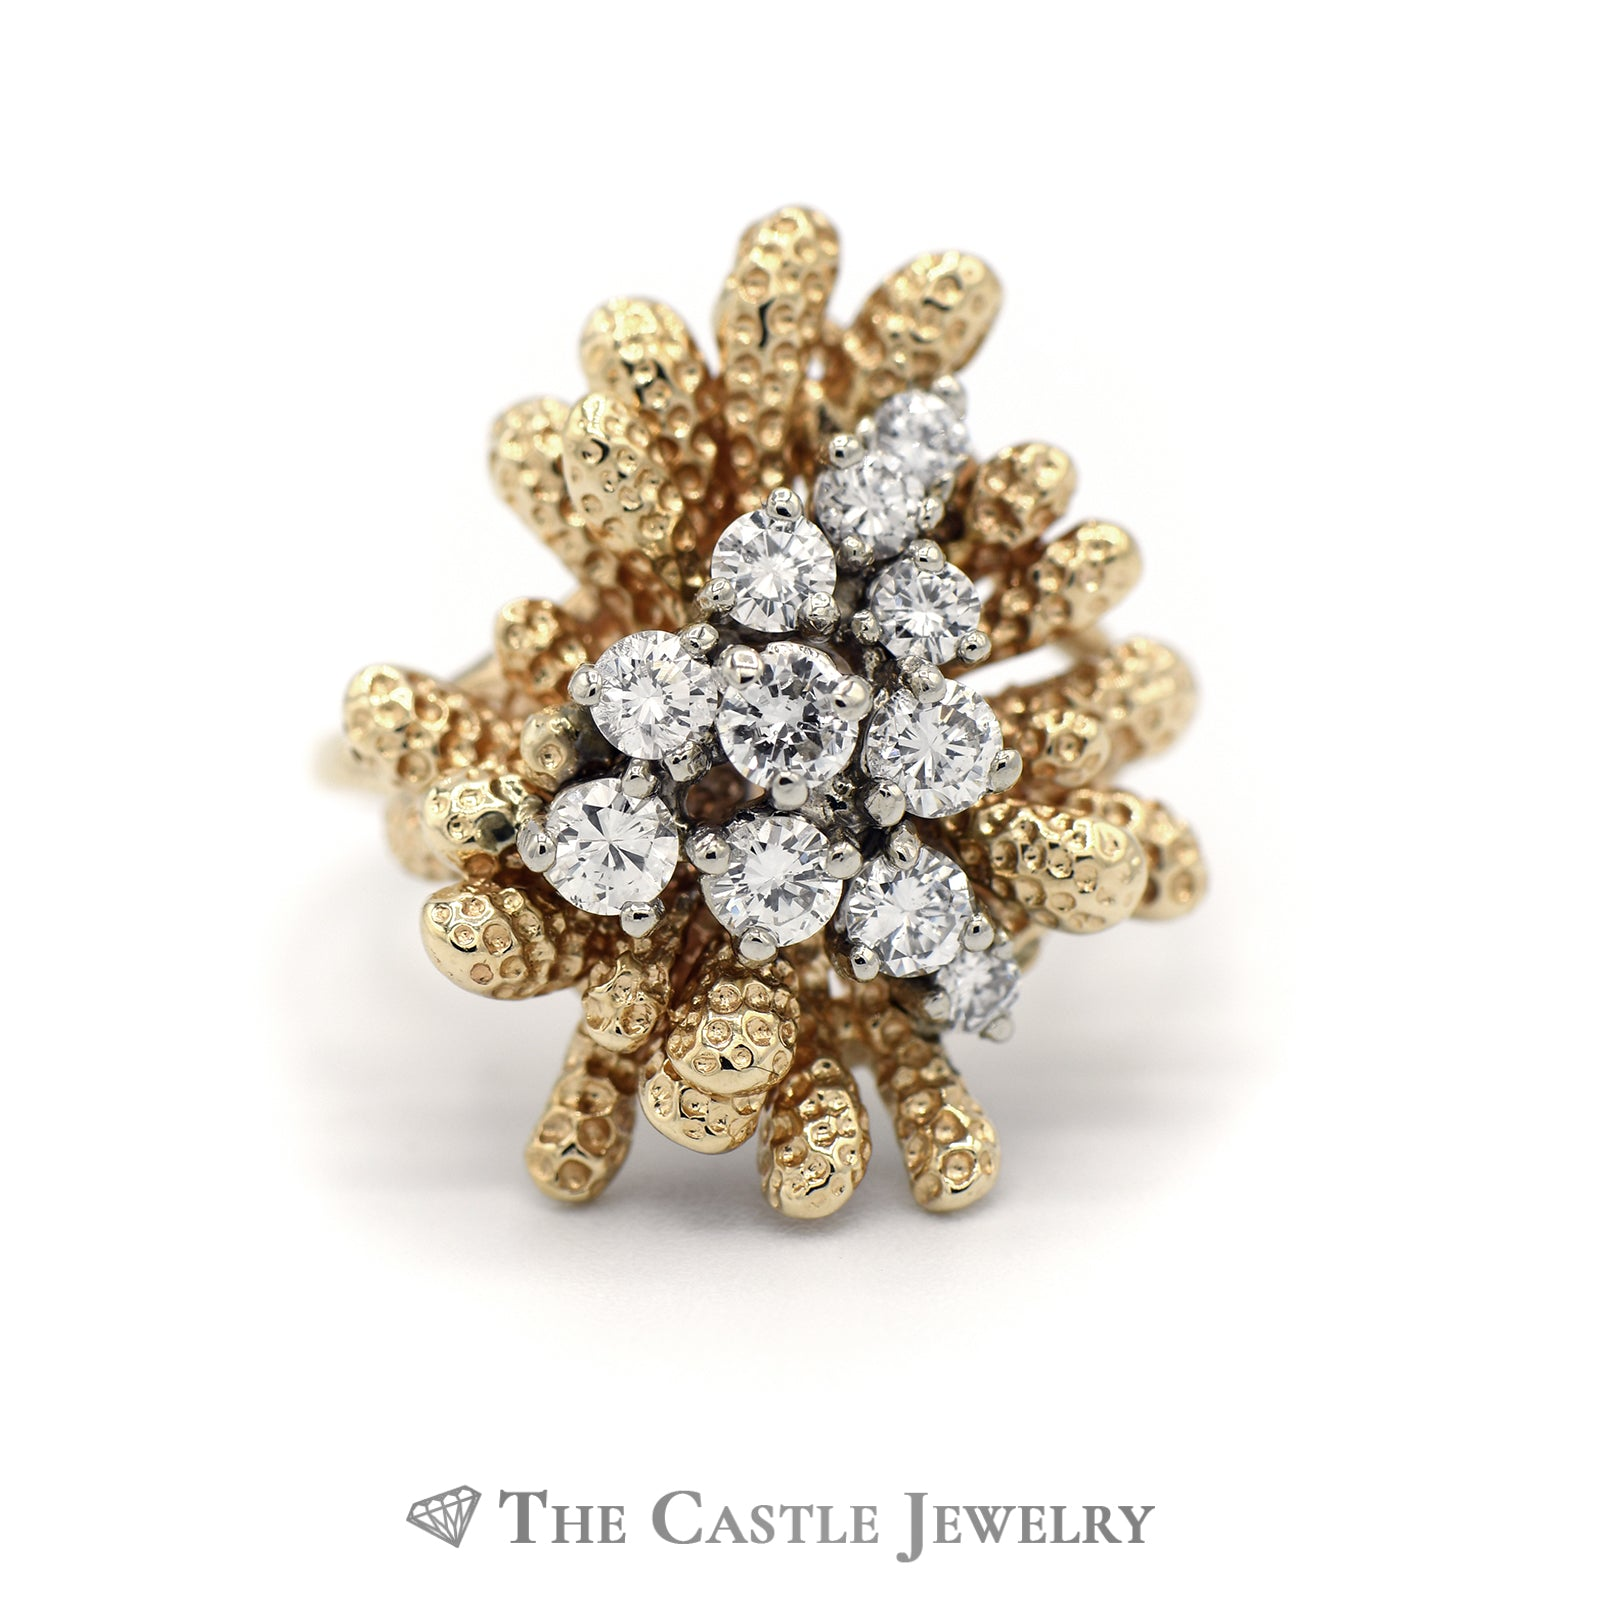 Coral Reef Diamond Cluster Ring in 14KT Yellow Gold